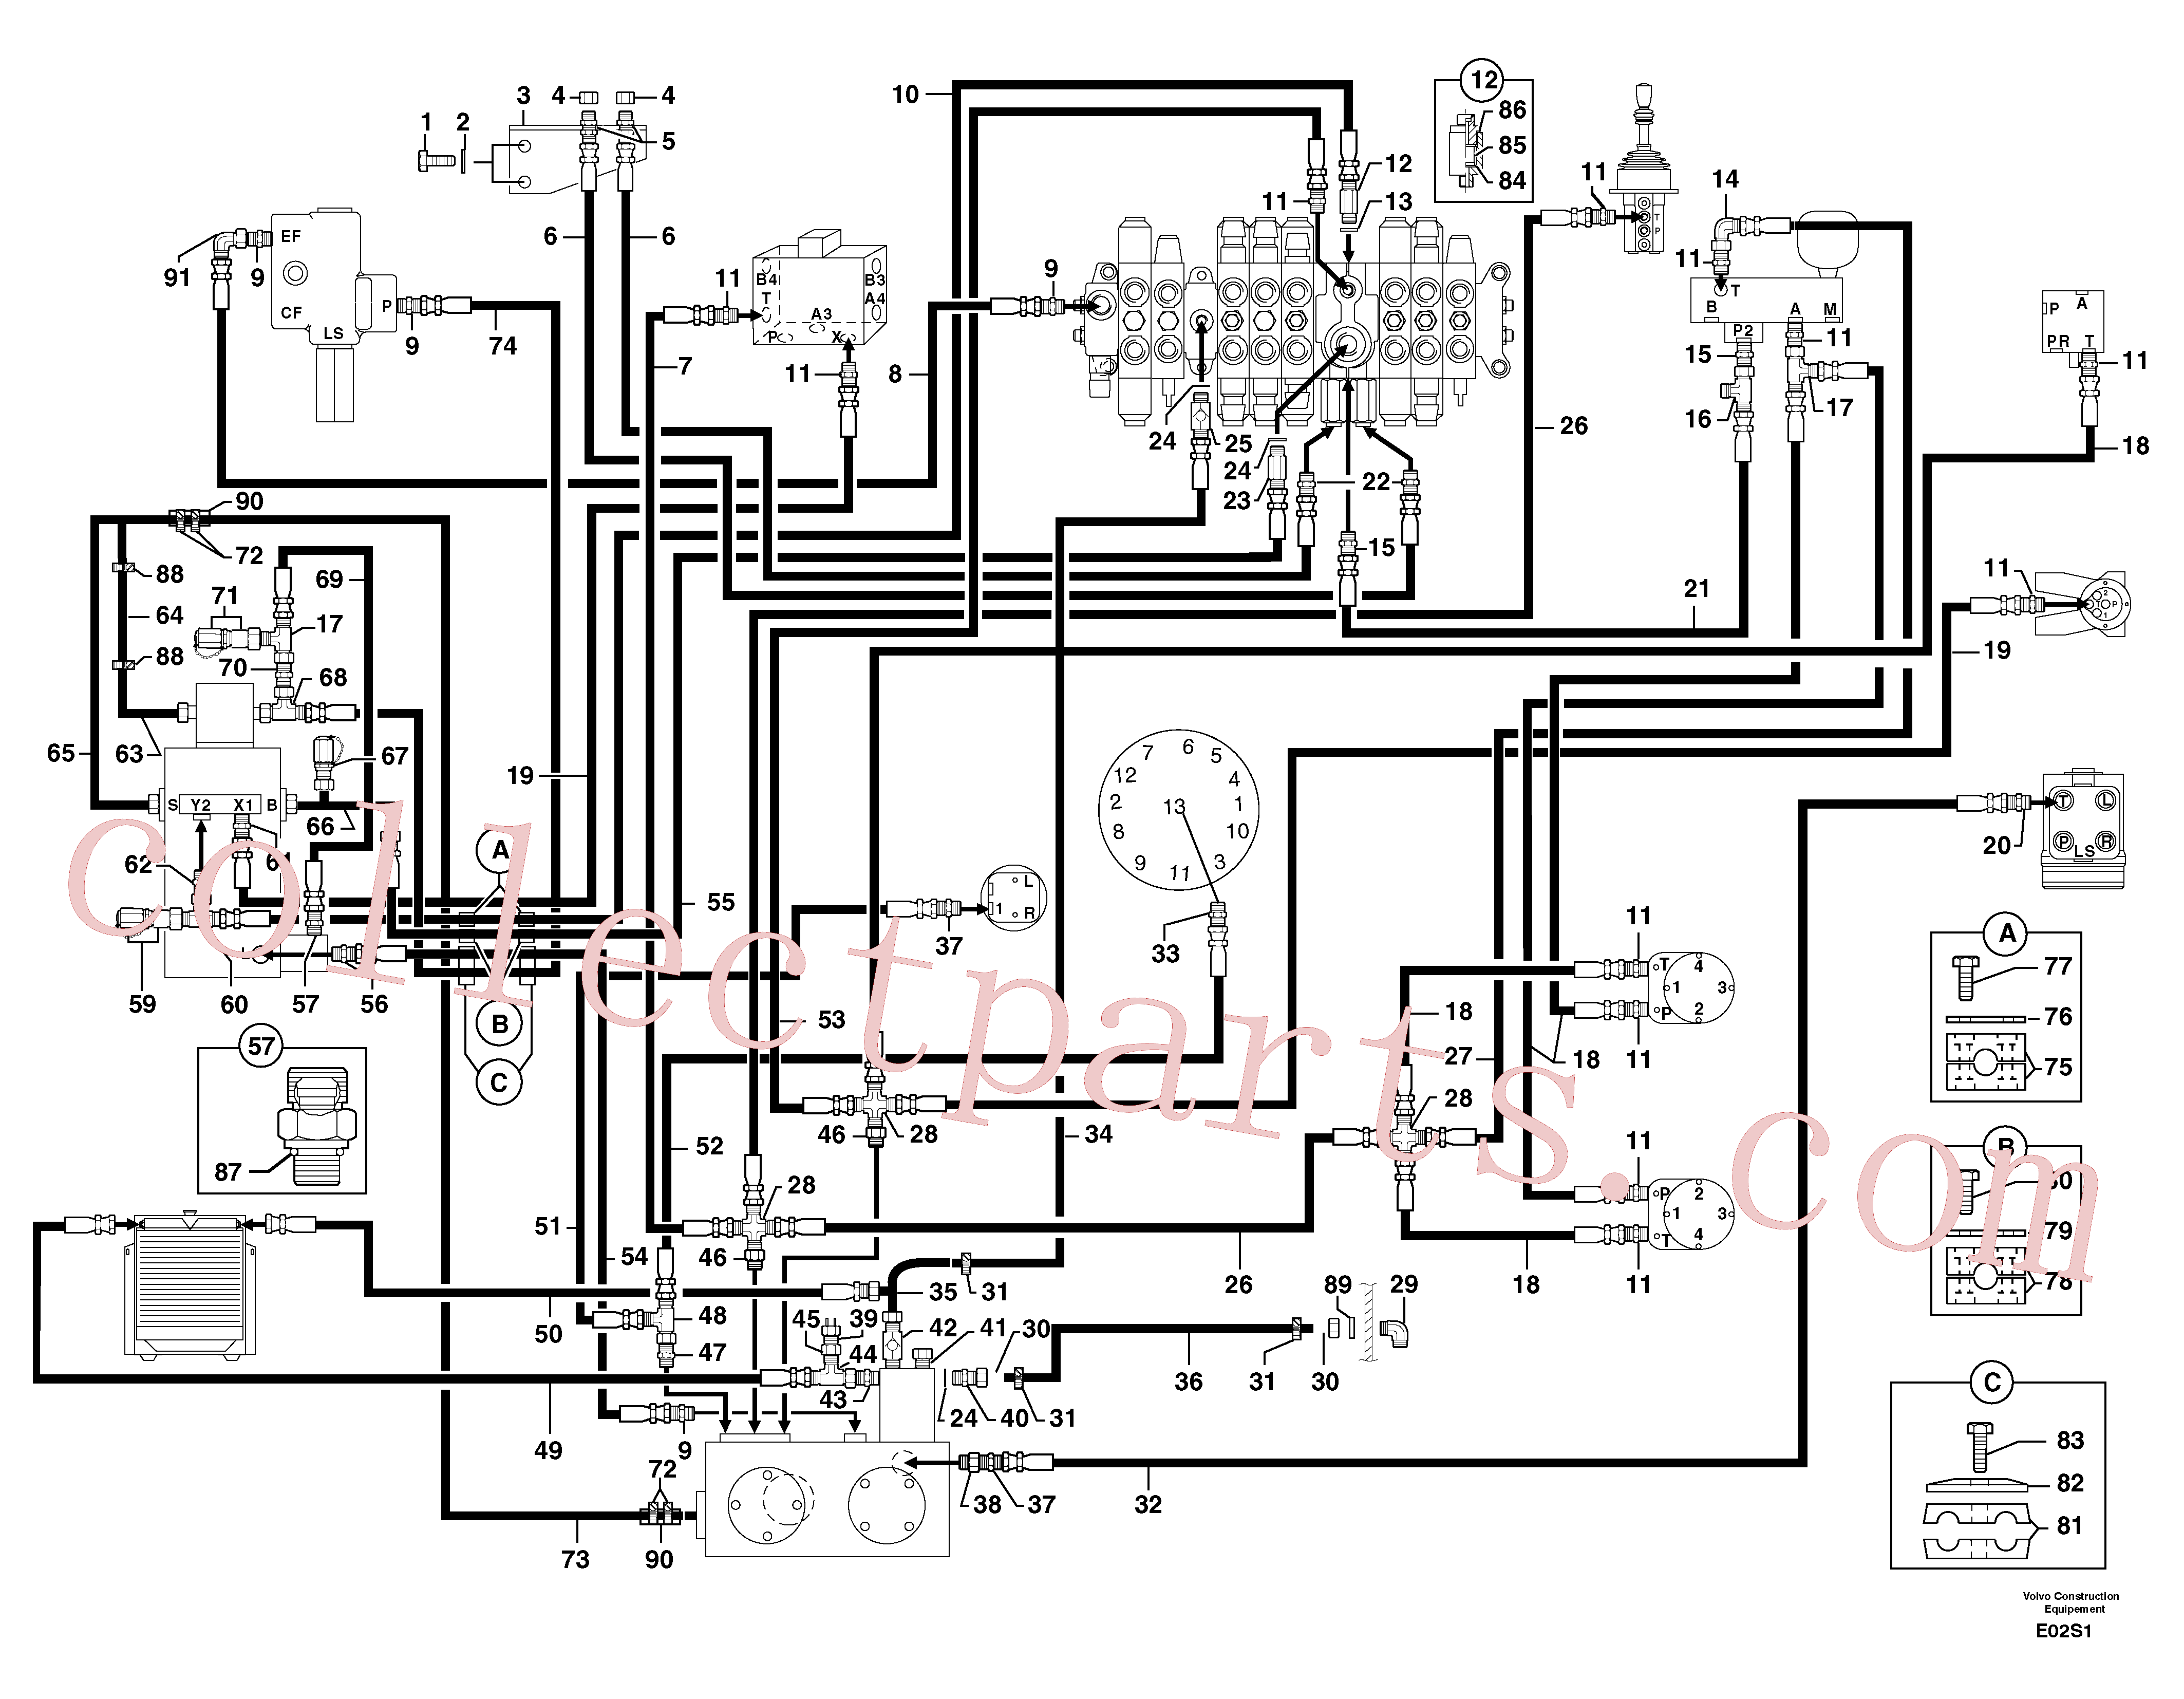 VOE936438 for Volvo Attachments supply and return circuit(E02S1 assembly)